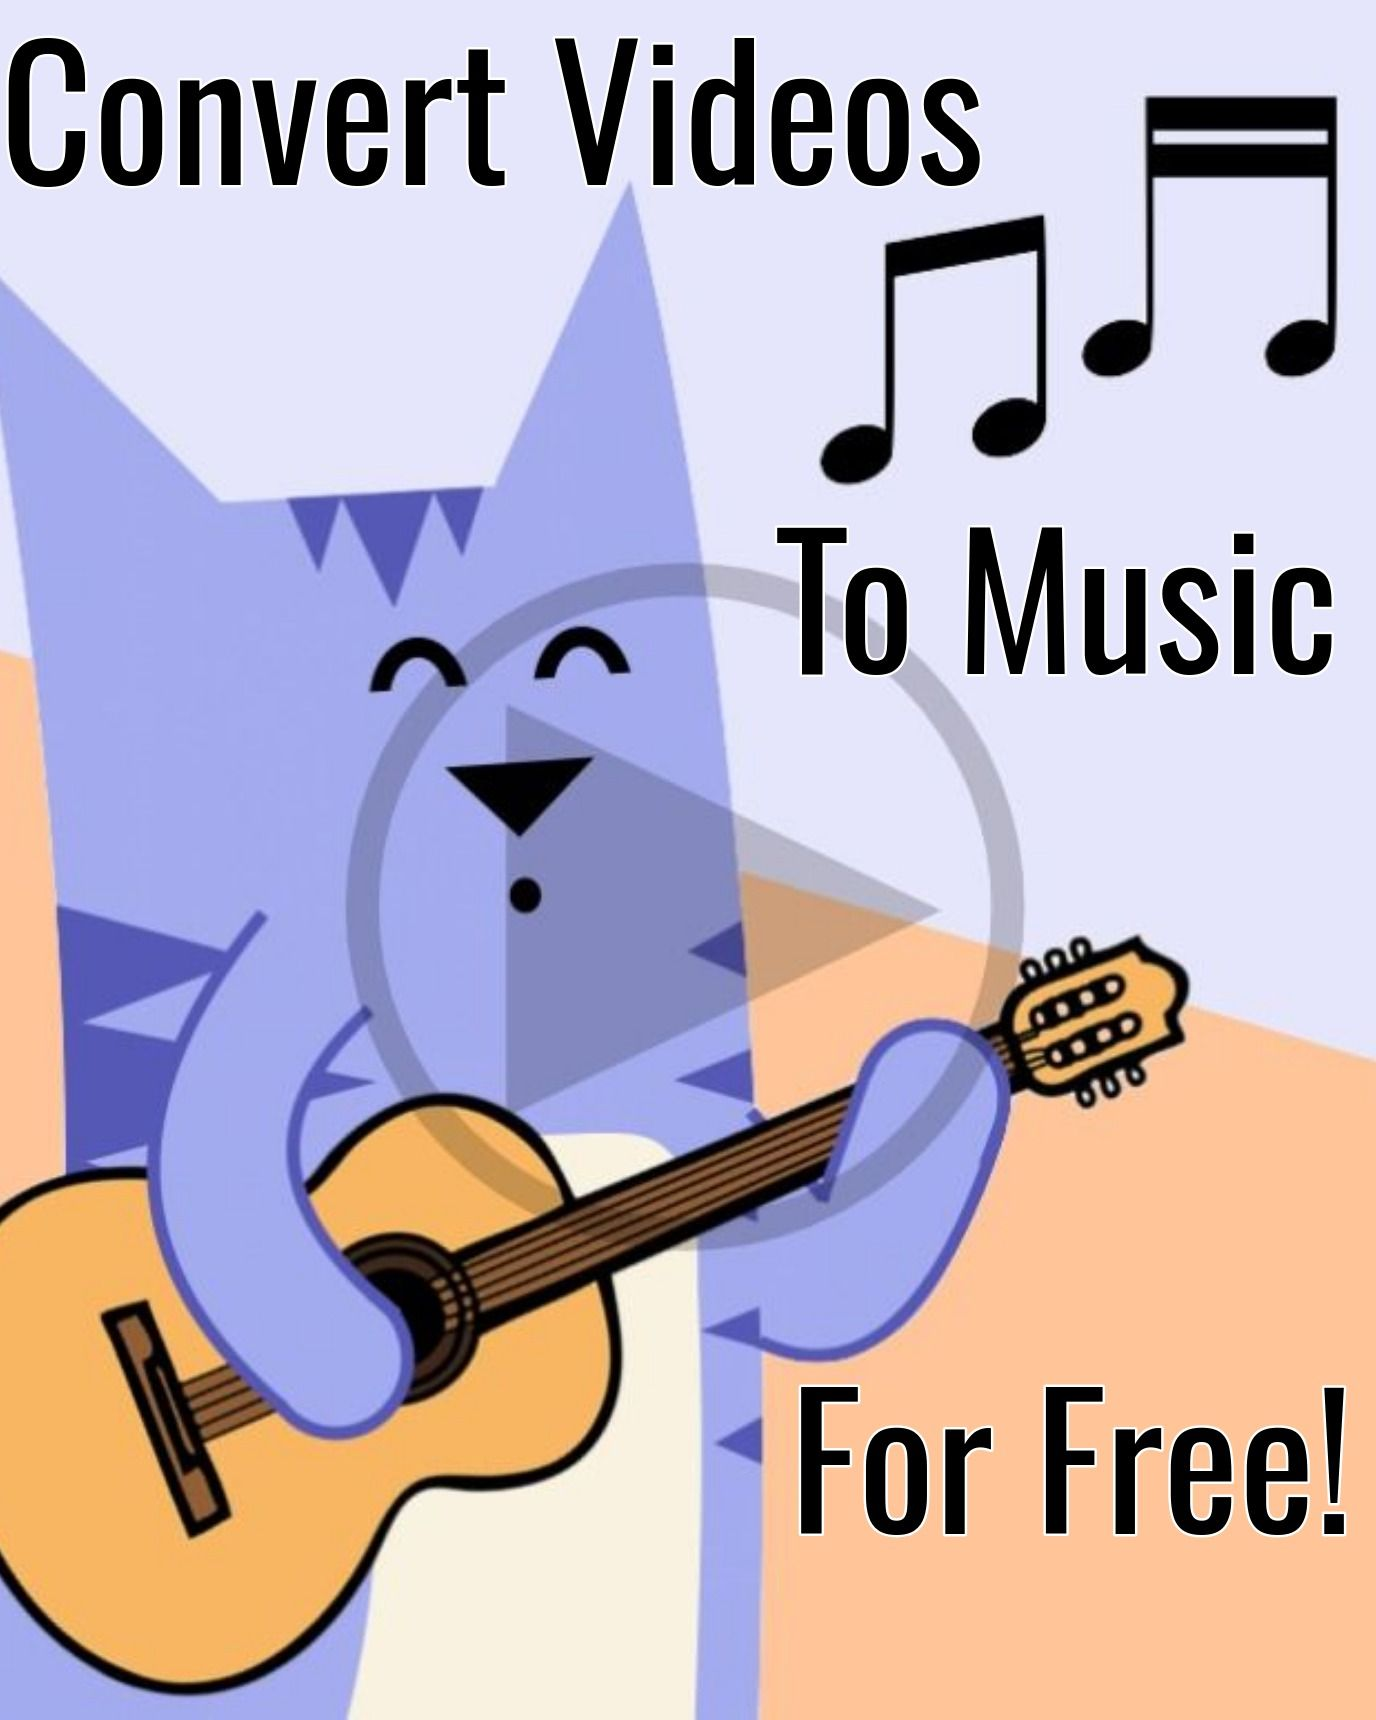 Convert Videos to Music for Free Online